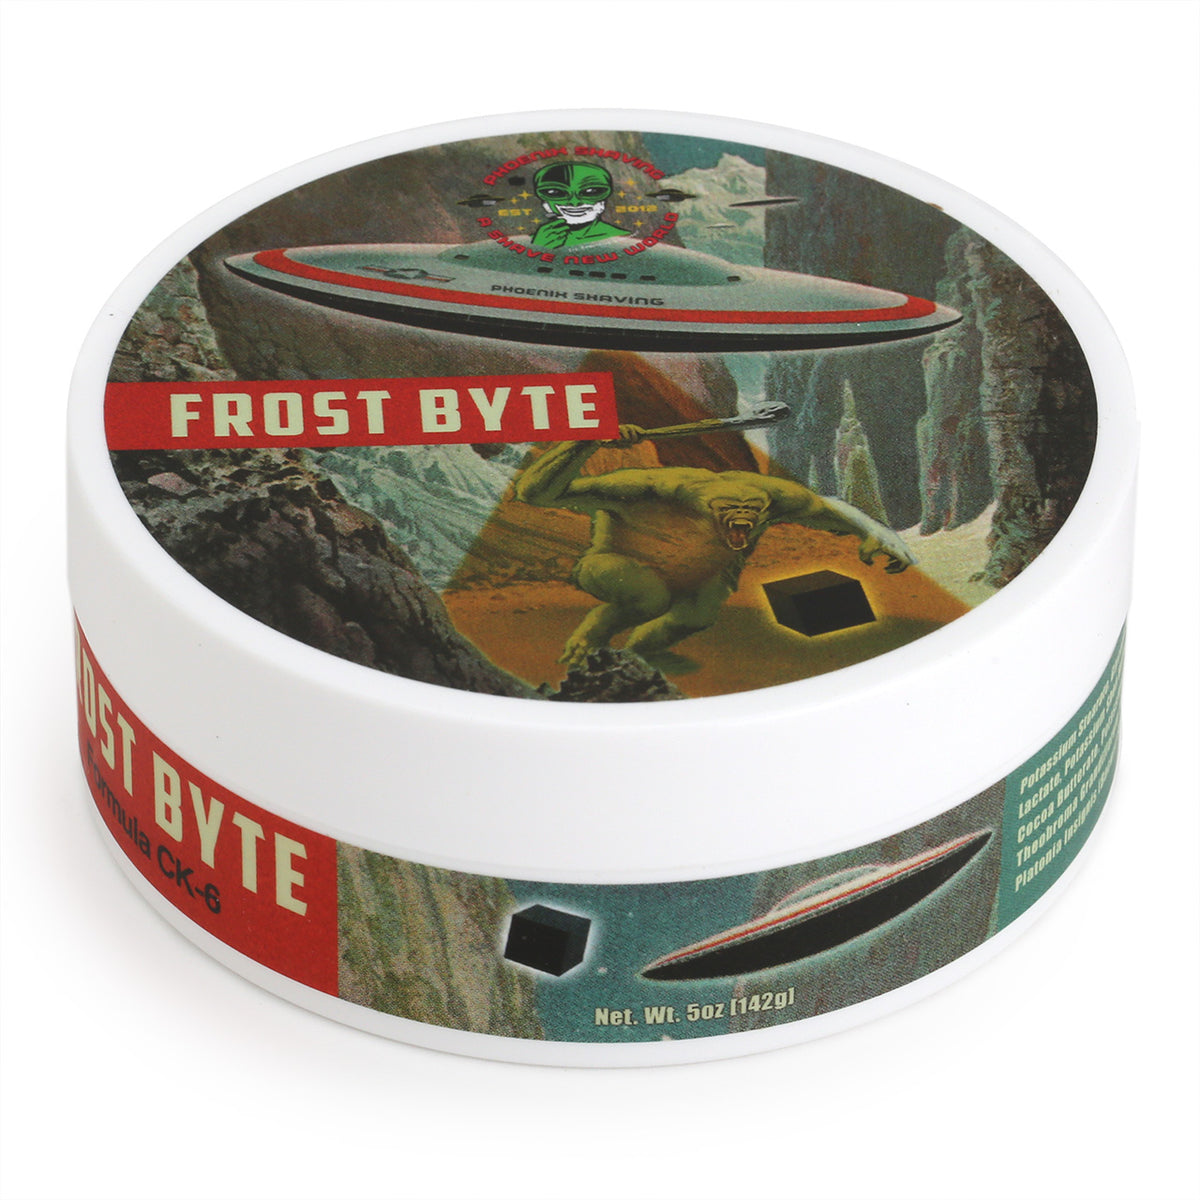 Phoenix Shaving Frost Byte Shave Soap tub with Alien-Landing label three quarter view